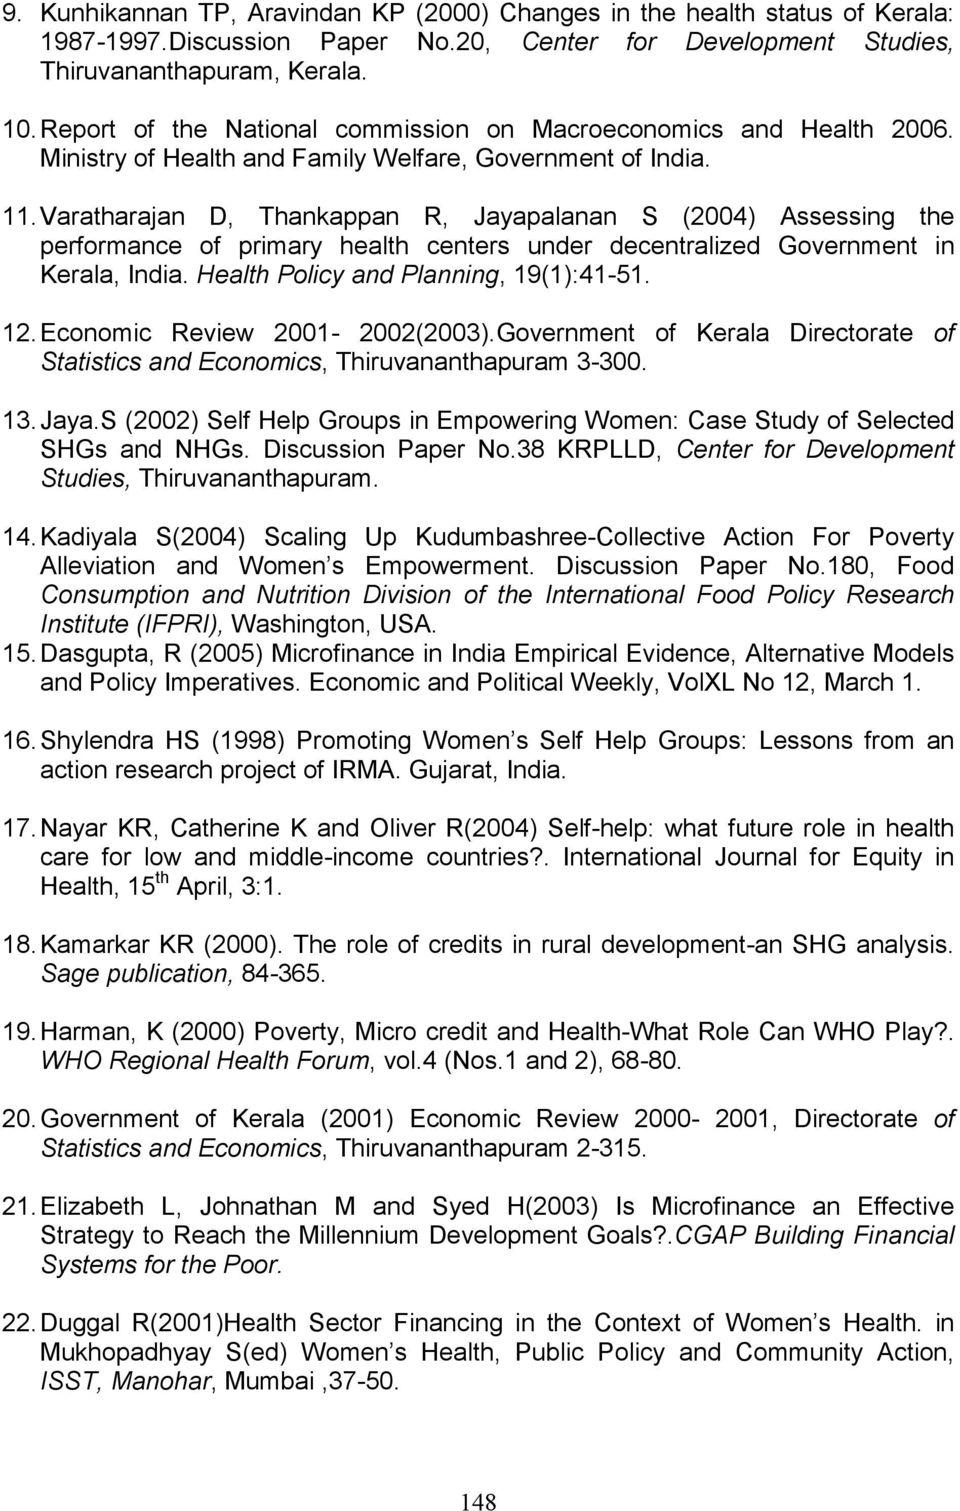 Varatharajan D, Thankappan R, Jayapalanan S (2004) Assessing the performance of primary health centers under decentralized Government in Kerala, India. Health Policy and Planning, 19(1):41-51. 12.